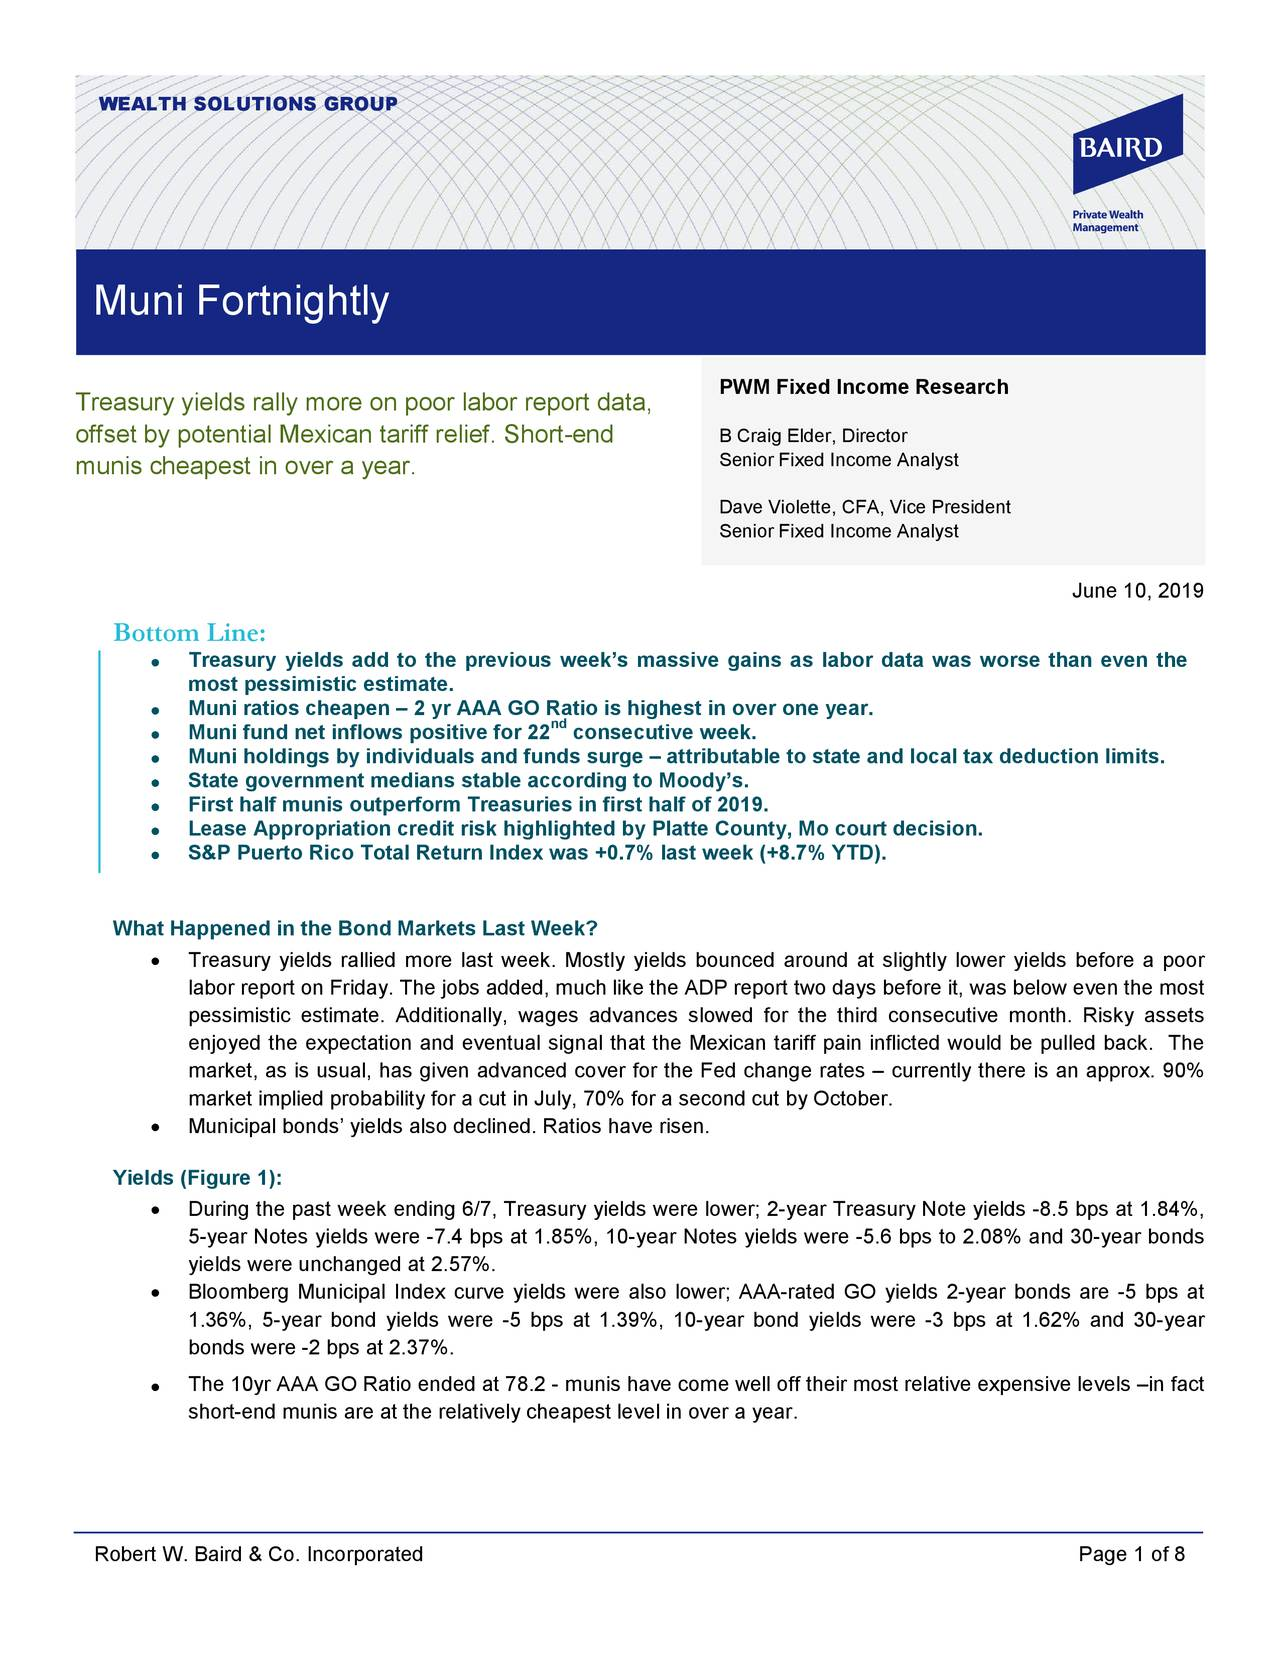 Muni Fortnightly PWM Fixed Income Research Treasury yields rally more on poor labor report data, offset by potential Mexican tariff relief. Short-end B Craig Elder, Director David N. Violette, CFA, Vice President munis cheapest in over a year. Senior Fixed Income Analyst Dave Violette, CFA, Vice President Senior Fixed Income Analyst June 10, 2019 Bottom Line: • Treasury yields add to the previous week's massive gains as labor data was worse than even the most pessimistic estimate. • Muni ratios cheapen – 2 yr AAA GO Ratio is highest in over one year. Muni fund net inflows positive for 22 ndconsecutive week. • • Muni holdings by individuals and funds surge – attributable to state and local tax deduction limits. • State government medians stable according to Moody's. • First half munis outperform Treasuries in first half of 2019. • Lease Appropriation credit risk highlighted by Platte County, Mo court decision. • S&P Puerto Rico Total Return Index was +0.7% last week (+8.7% YTD). What Happened in the Bond Markets Last Week? • Treasury yields rallied more last week. Mostly yields bounced around at slightly lower yields before a poor labor report on Friday. The jobs added, much like the ADP report two days before it, was below even the most pessimistic estimate. Additionally, wages advanc es slowed for the third consecutive month. Risky assets enjoyed the expectation and eventual signal that the Mexican tariff pain inflicted would be pulled back. The market, as is usual, has given advanced cover for the Fed change rates – currently there is an approx. 90% market implied probability for a cut in July, 70% for a second cut by October. • Municipal bonds' yields also declined. Ratios have risen. Yields (Figure 1): • During the past week ending 6/7, Treasury yields were lower; 2- year Treasury Note yields -8.5 bps at 1.84%, 5-year Notes yields were -7.4 bps at 1.85%, 10-year Notes yields were -5.6 bps to 2.08% and 30-year bonds yields were unchanged at 2.57%. • Bloomberg Municipal Index curve yields were also lower; AAA -rated GO yields 2- year bonds are -5 bps at 1.36%, 5-year bond yields were - 5 bps at 1.39%, 10- year bond yields were -3 bps at 1.62% and 30- year bonds were -2 bps at 2.37%. • The 10yr AAA GO Ratio ended at 78.2 - munis have come well off their most relative expensive levels –in fact short-end munis are at the relatively cheapest level in over a year. Robert W. Baird & Co. Incorporated Page 1 of 8